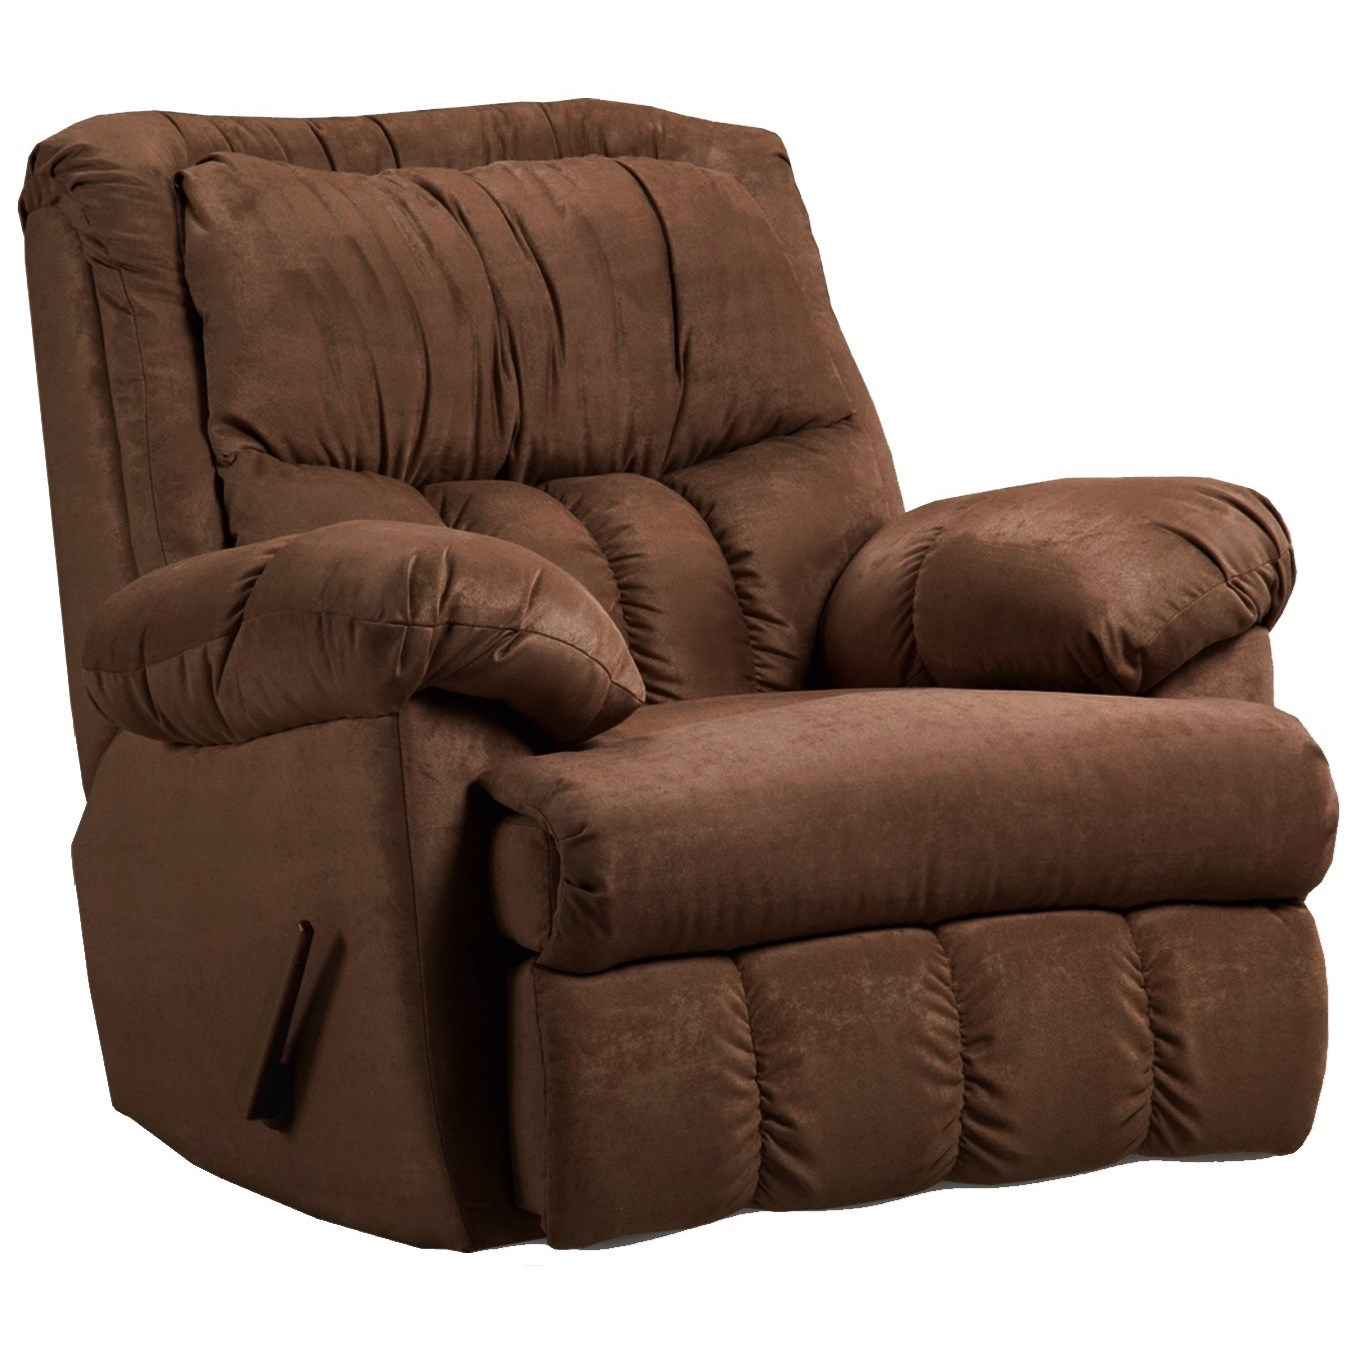 2500 Casual Rocker Recliner  by Affordable Furniture at Wilcox Furniture